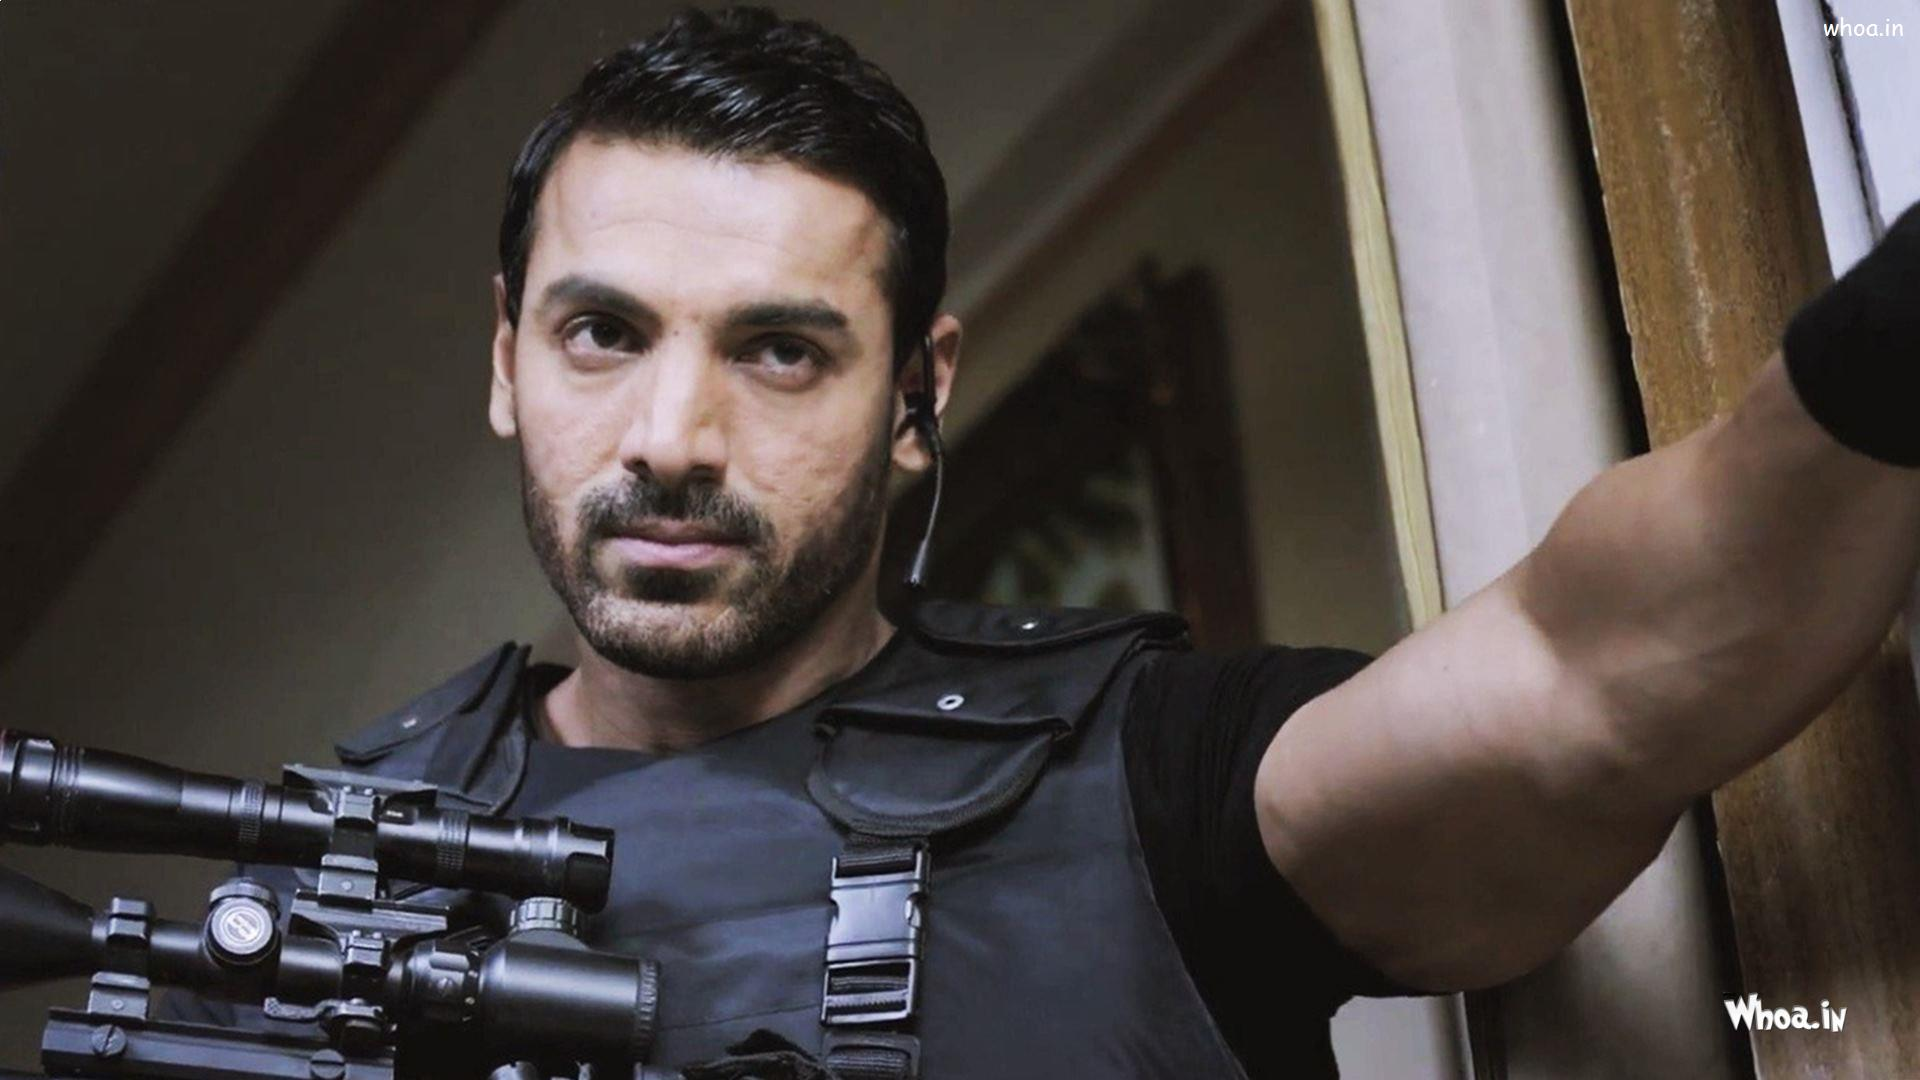 Wallpaper download john abraham - John Abraham With Gun In Wazir Movies Hd Wallpaper